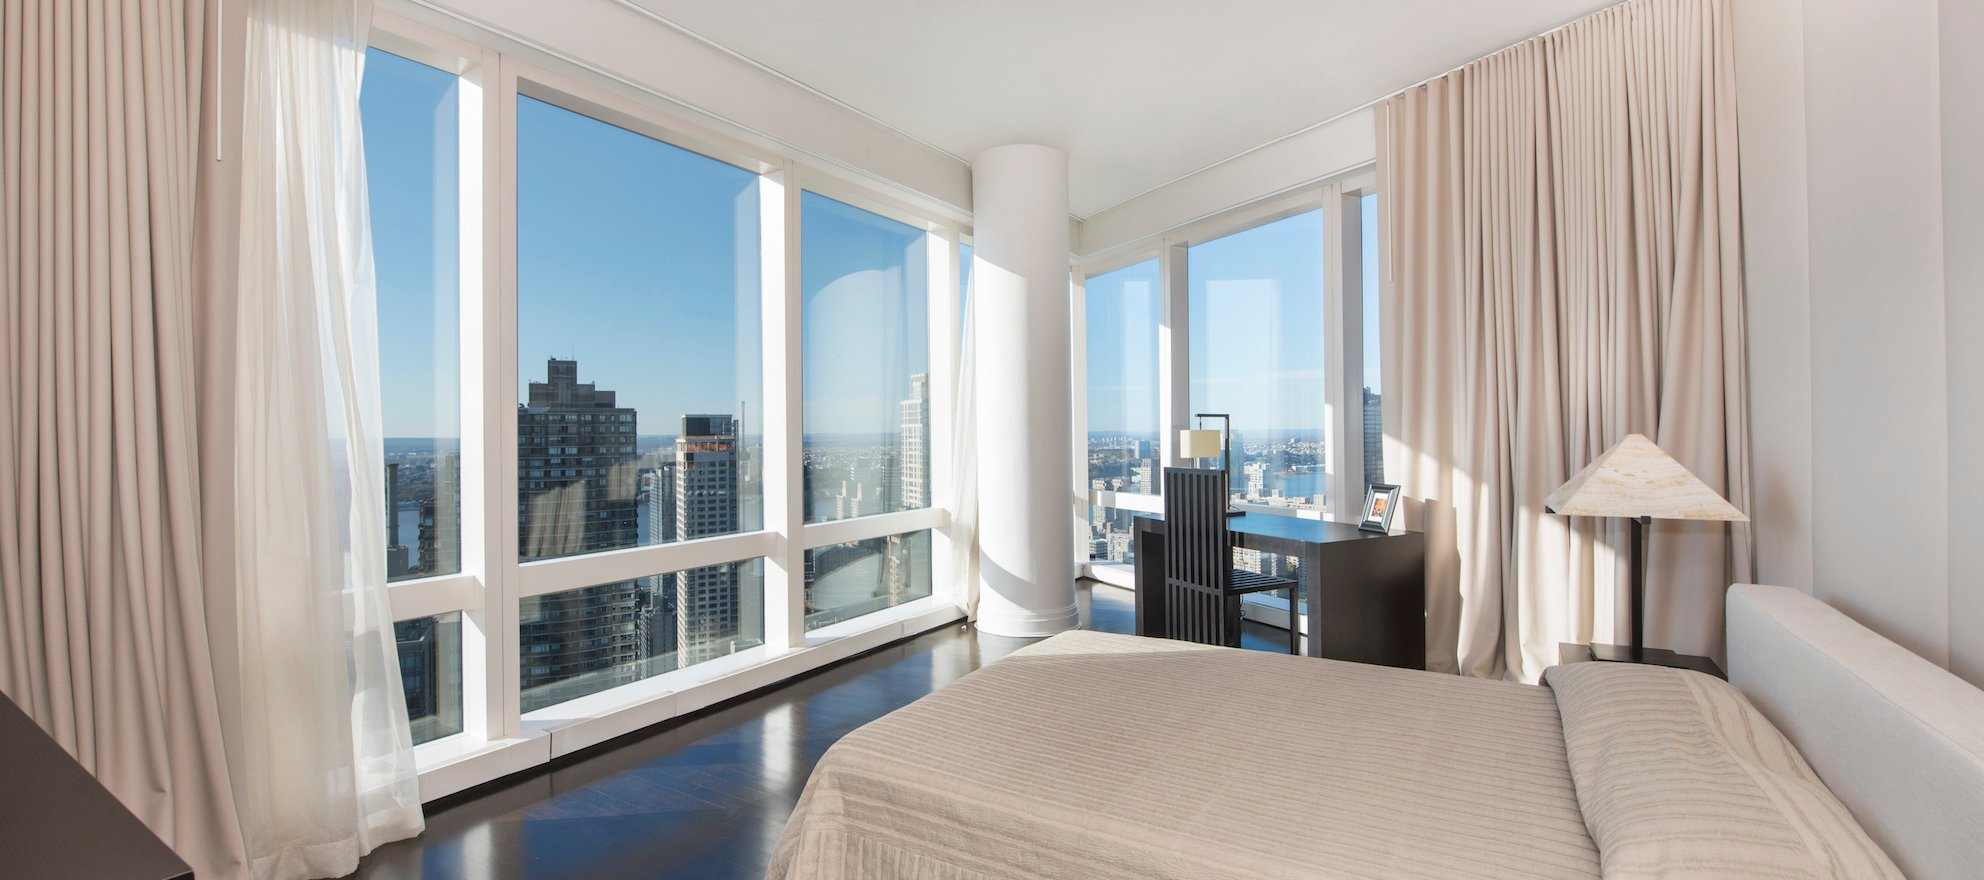 Luxury listing of the day: NYC UWS residence at the Mandarin Oriental Hotel